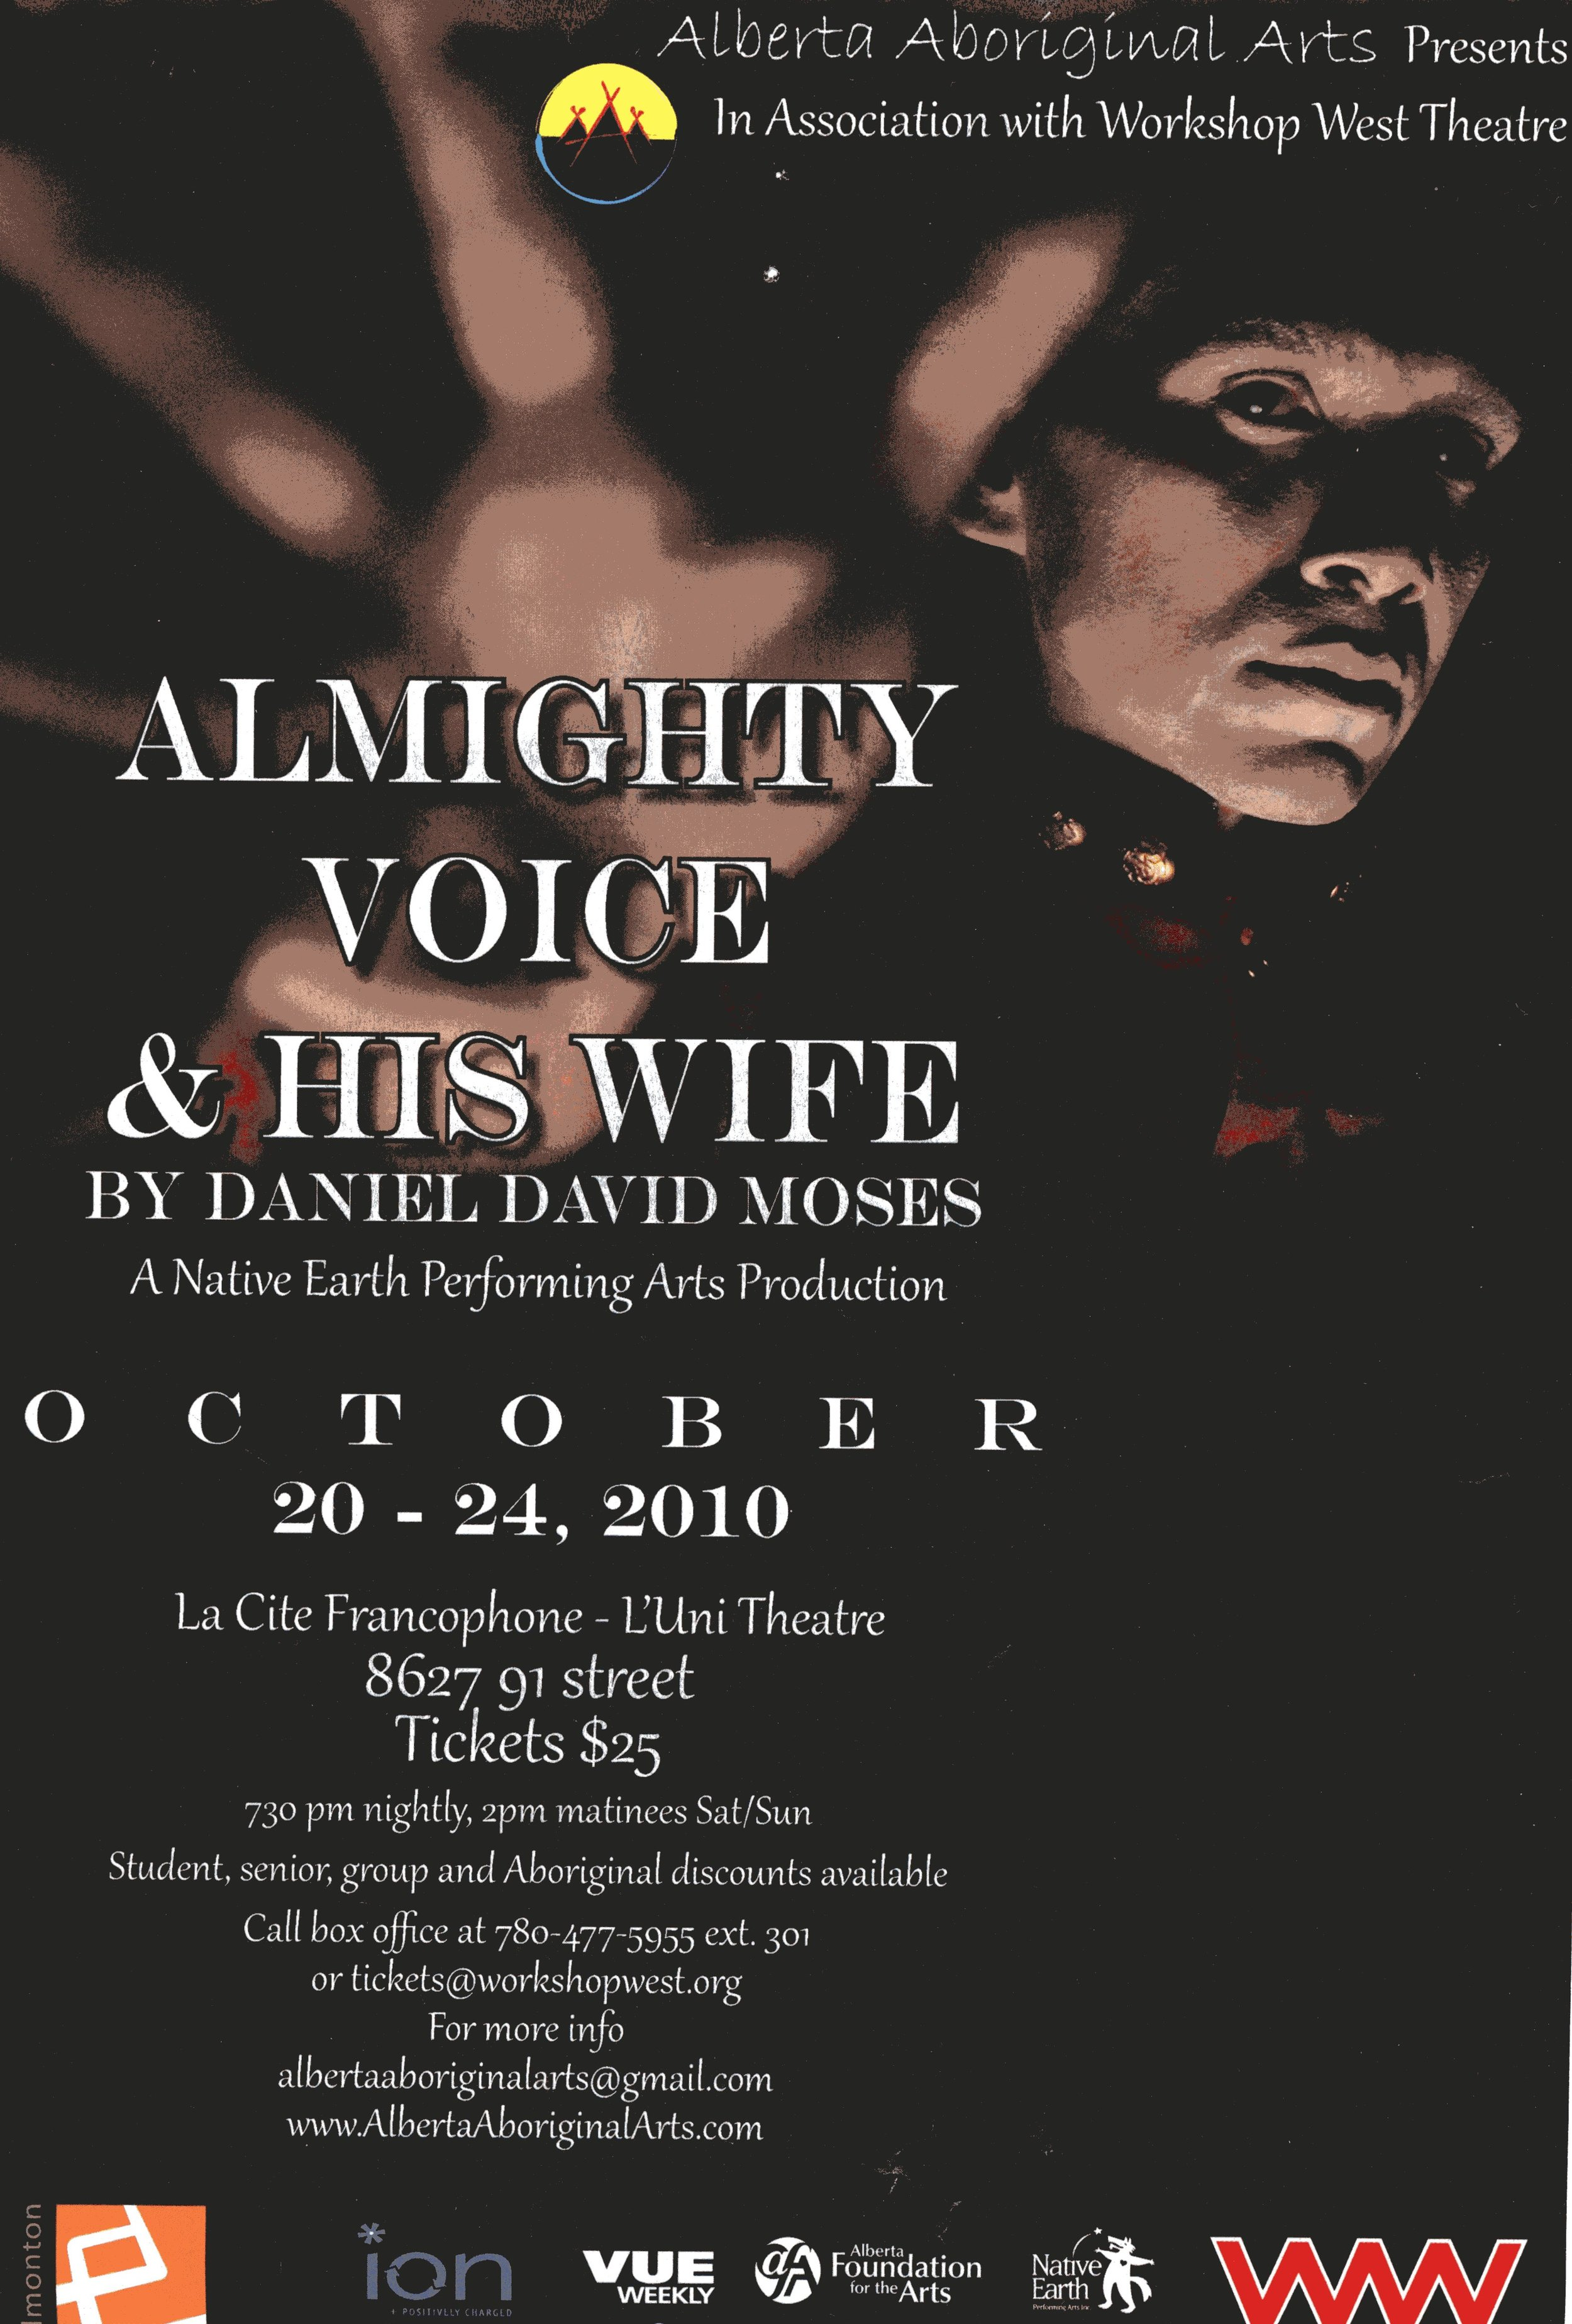 Almighty Voice (2010) Promotional Poster.jpg